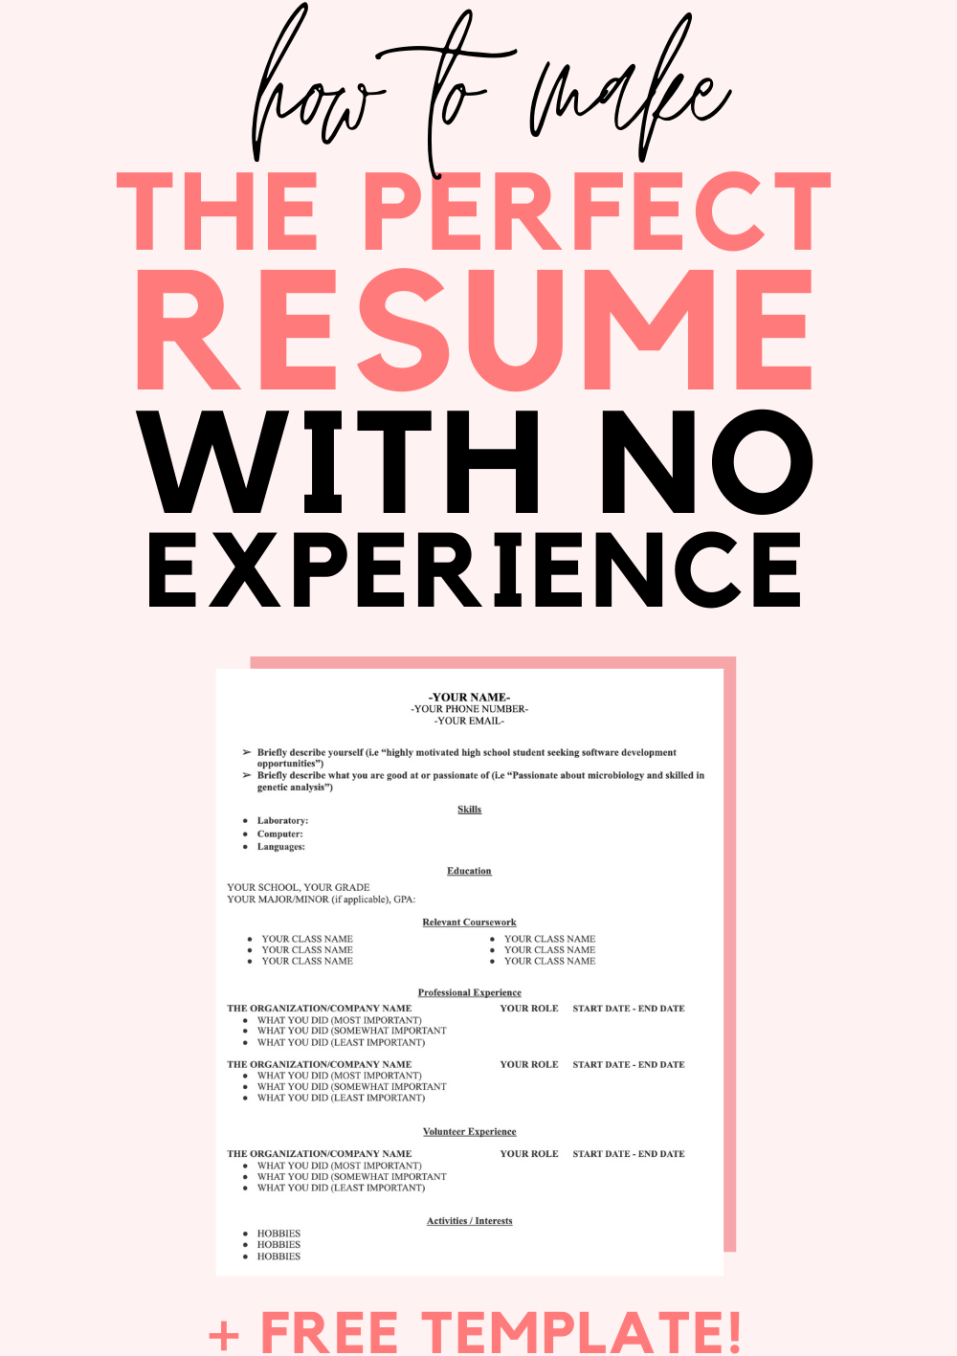 How to Make the Perfect Resume With No Experience (Plus Free Resume Template!)